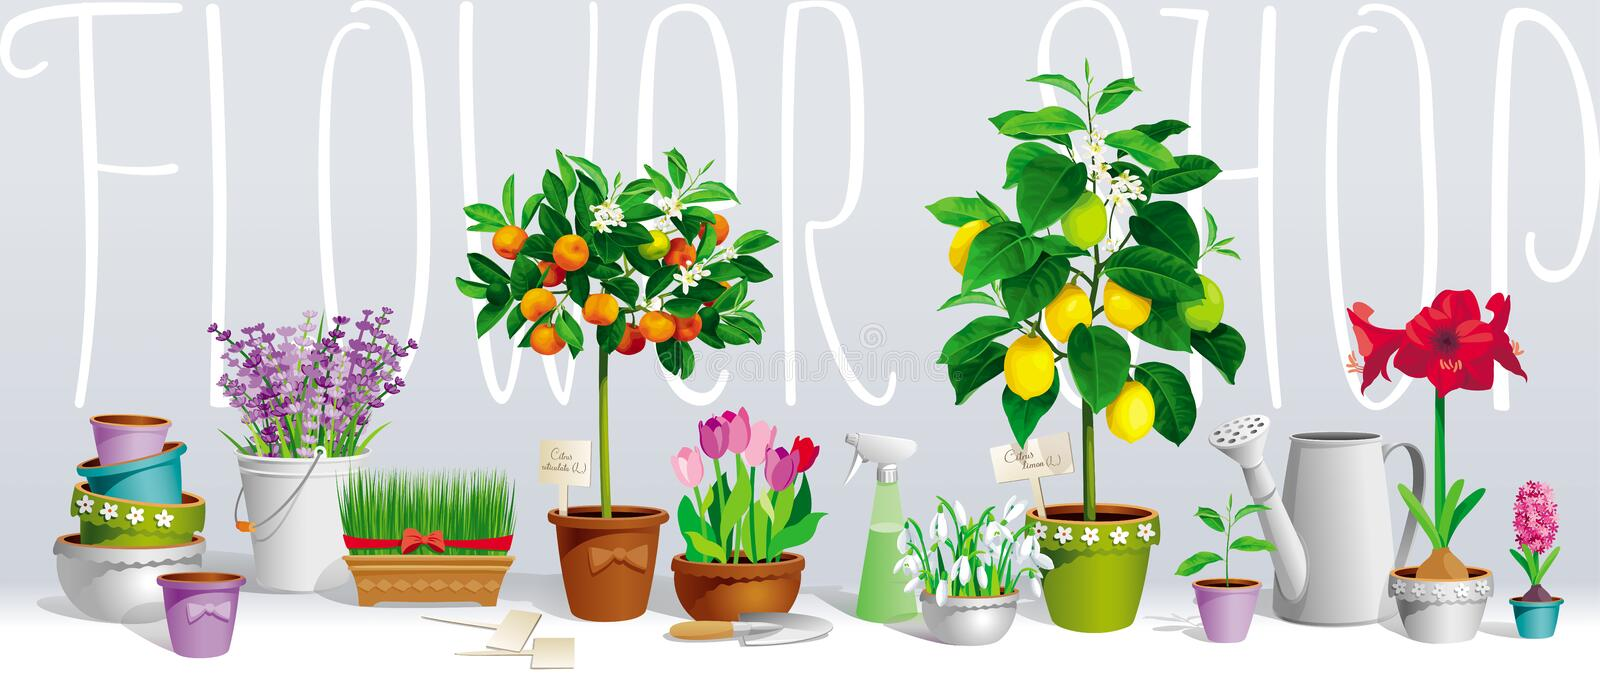 Collection of pot plants vector illustration